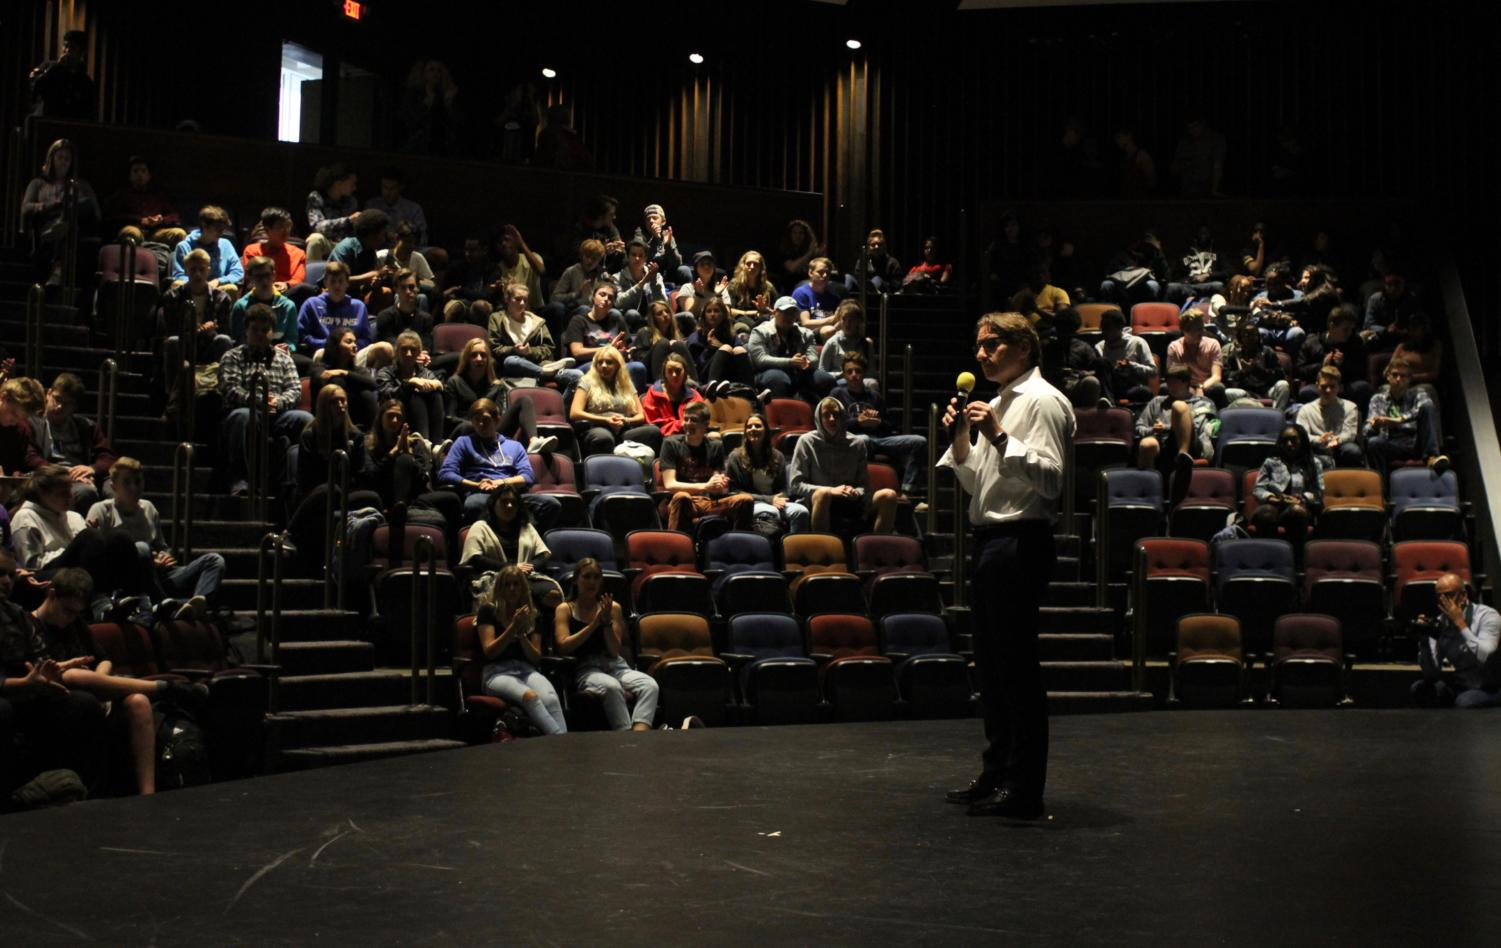 Dean Phillips came on a visit to HHS this week. Phillips is running for congress.